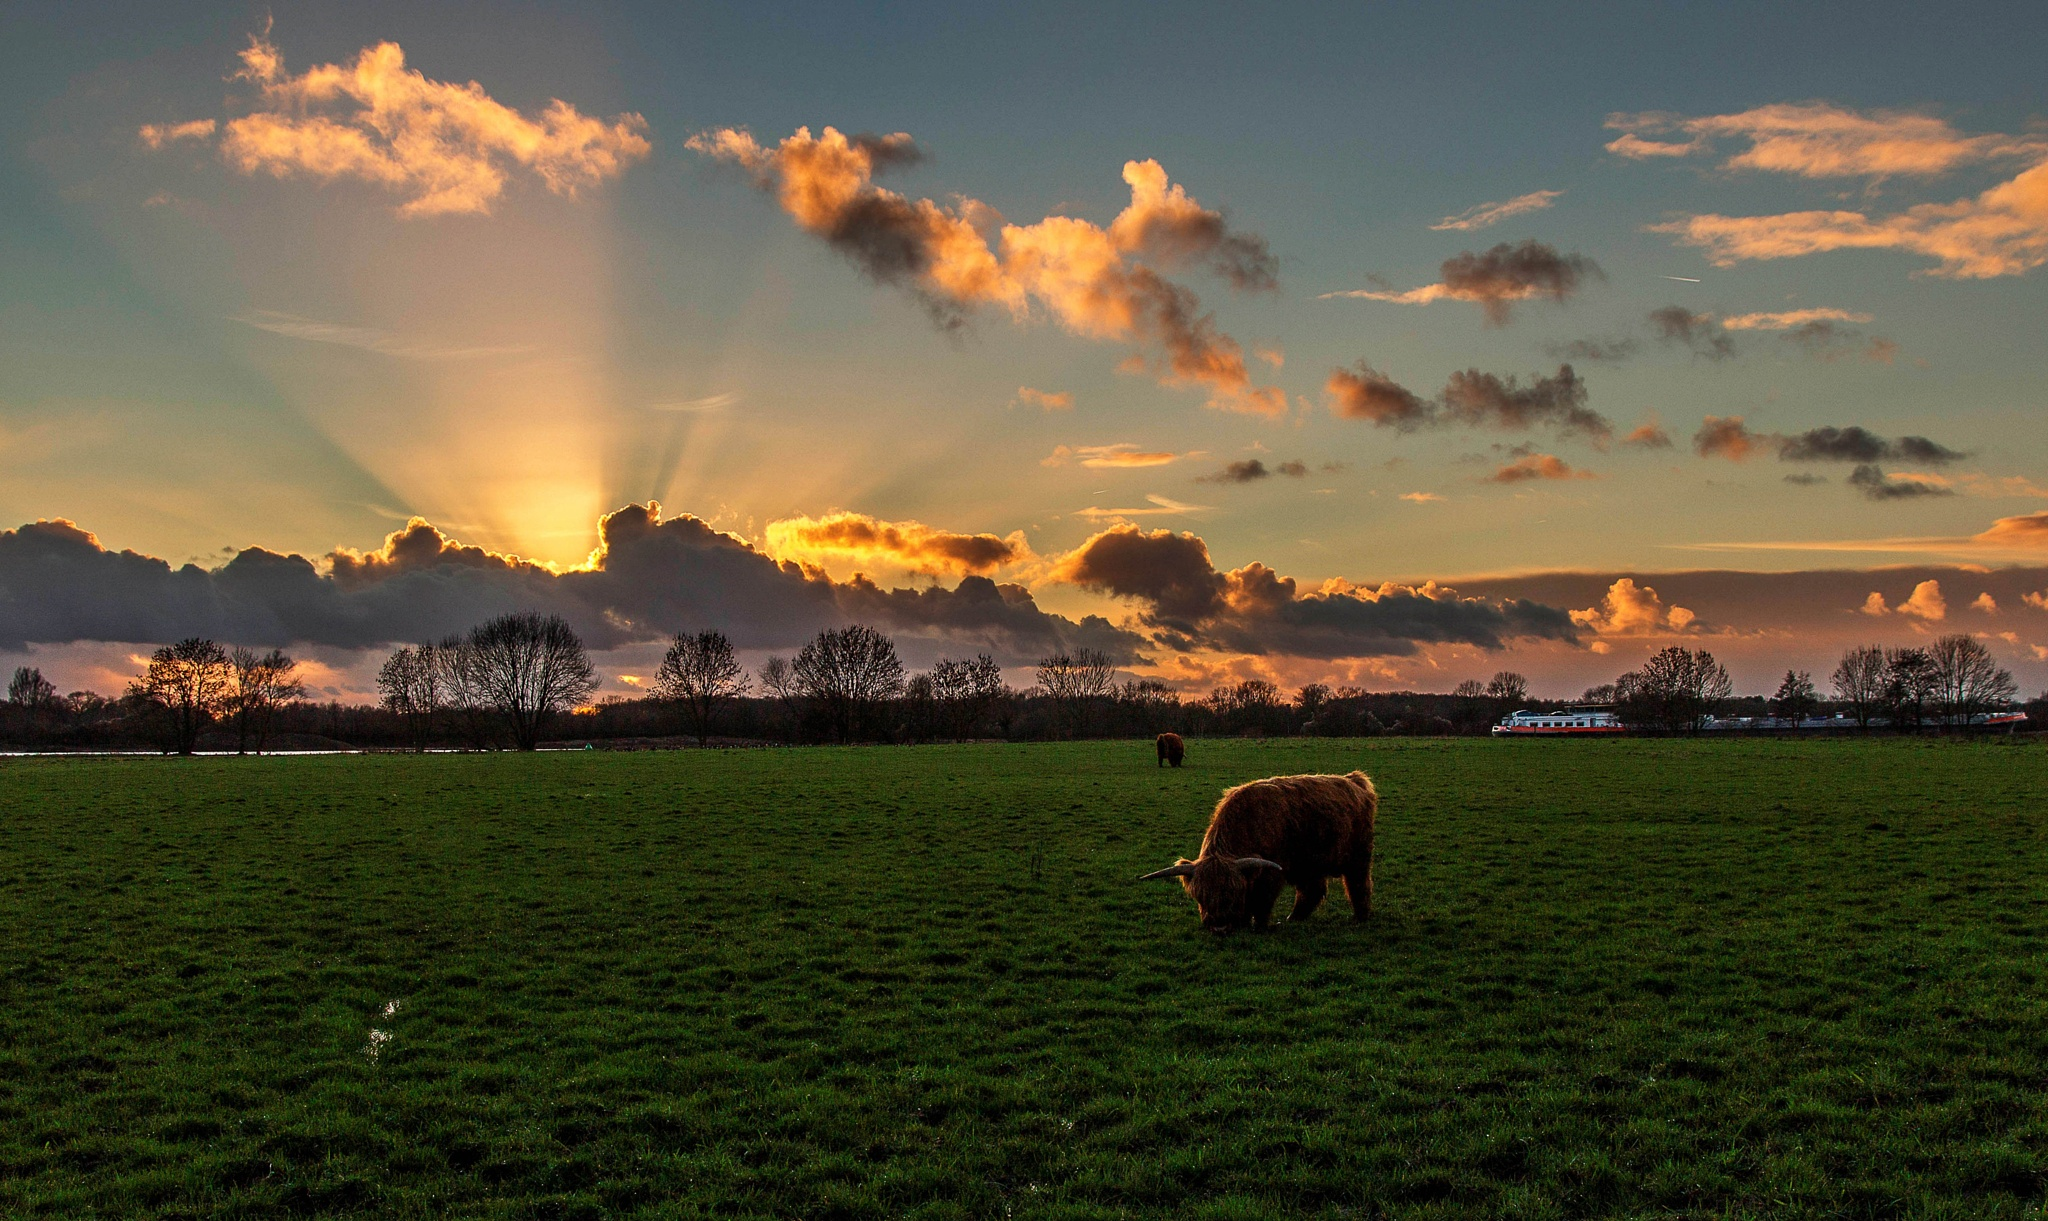 Sunset by Theo Hermsen